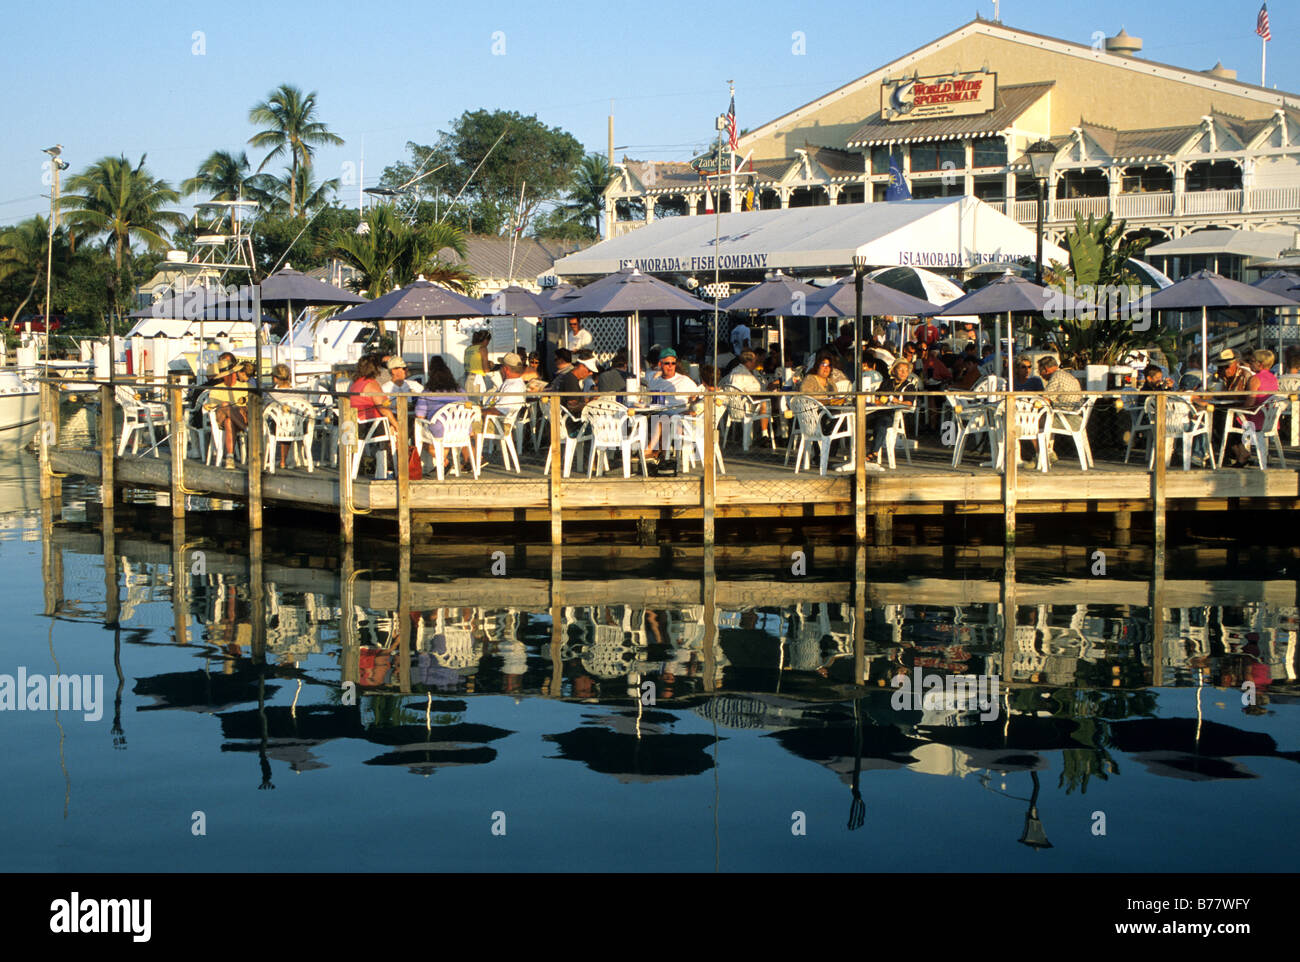 Islamorada Restaurants With Live Music 1